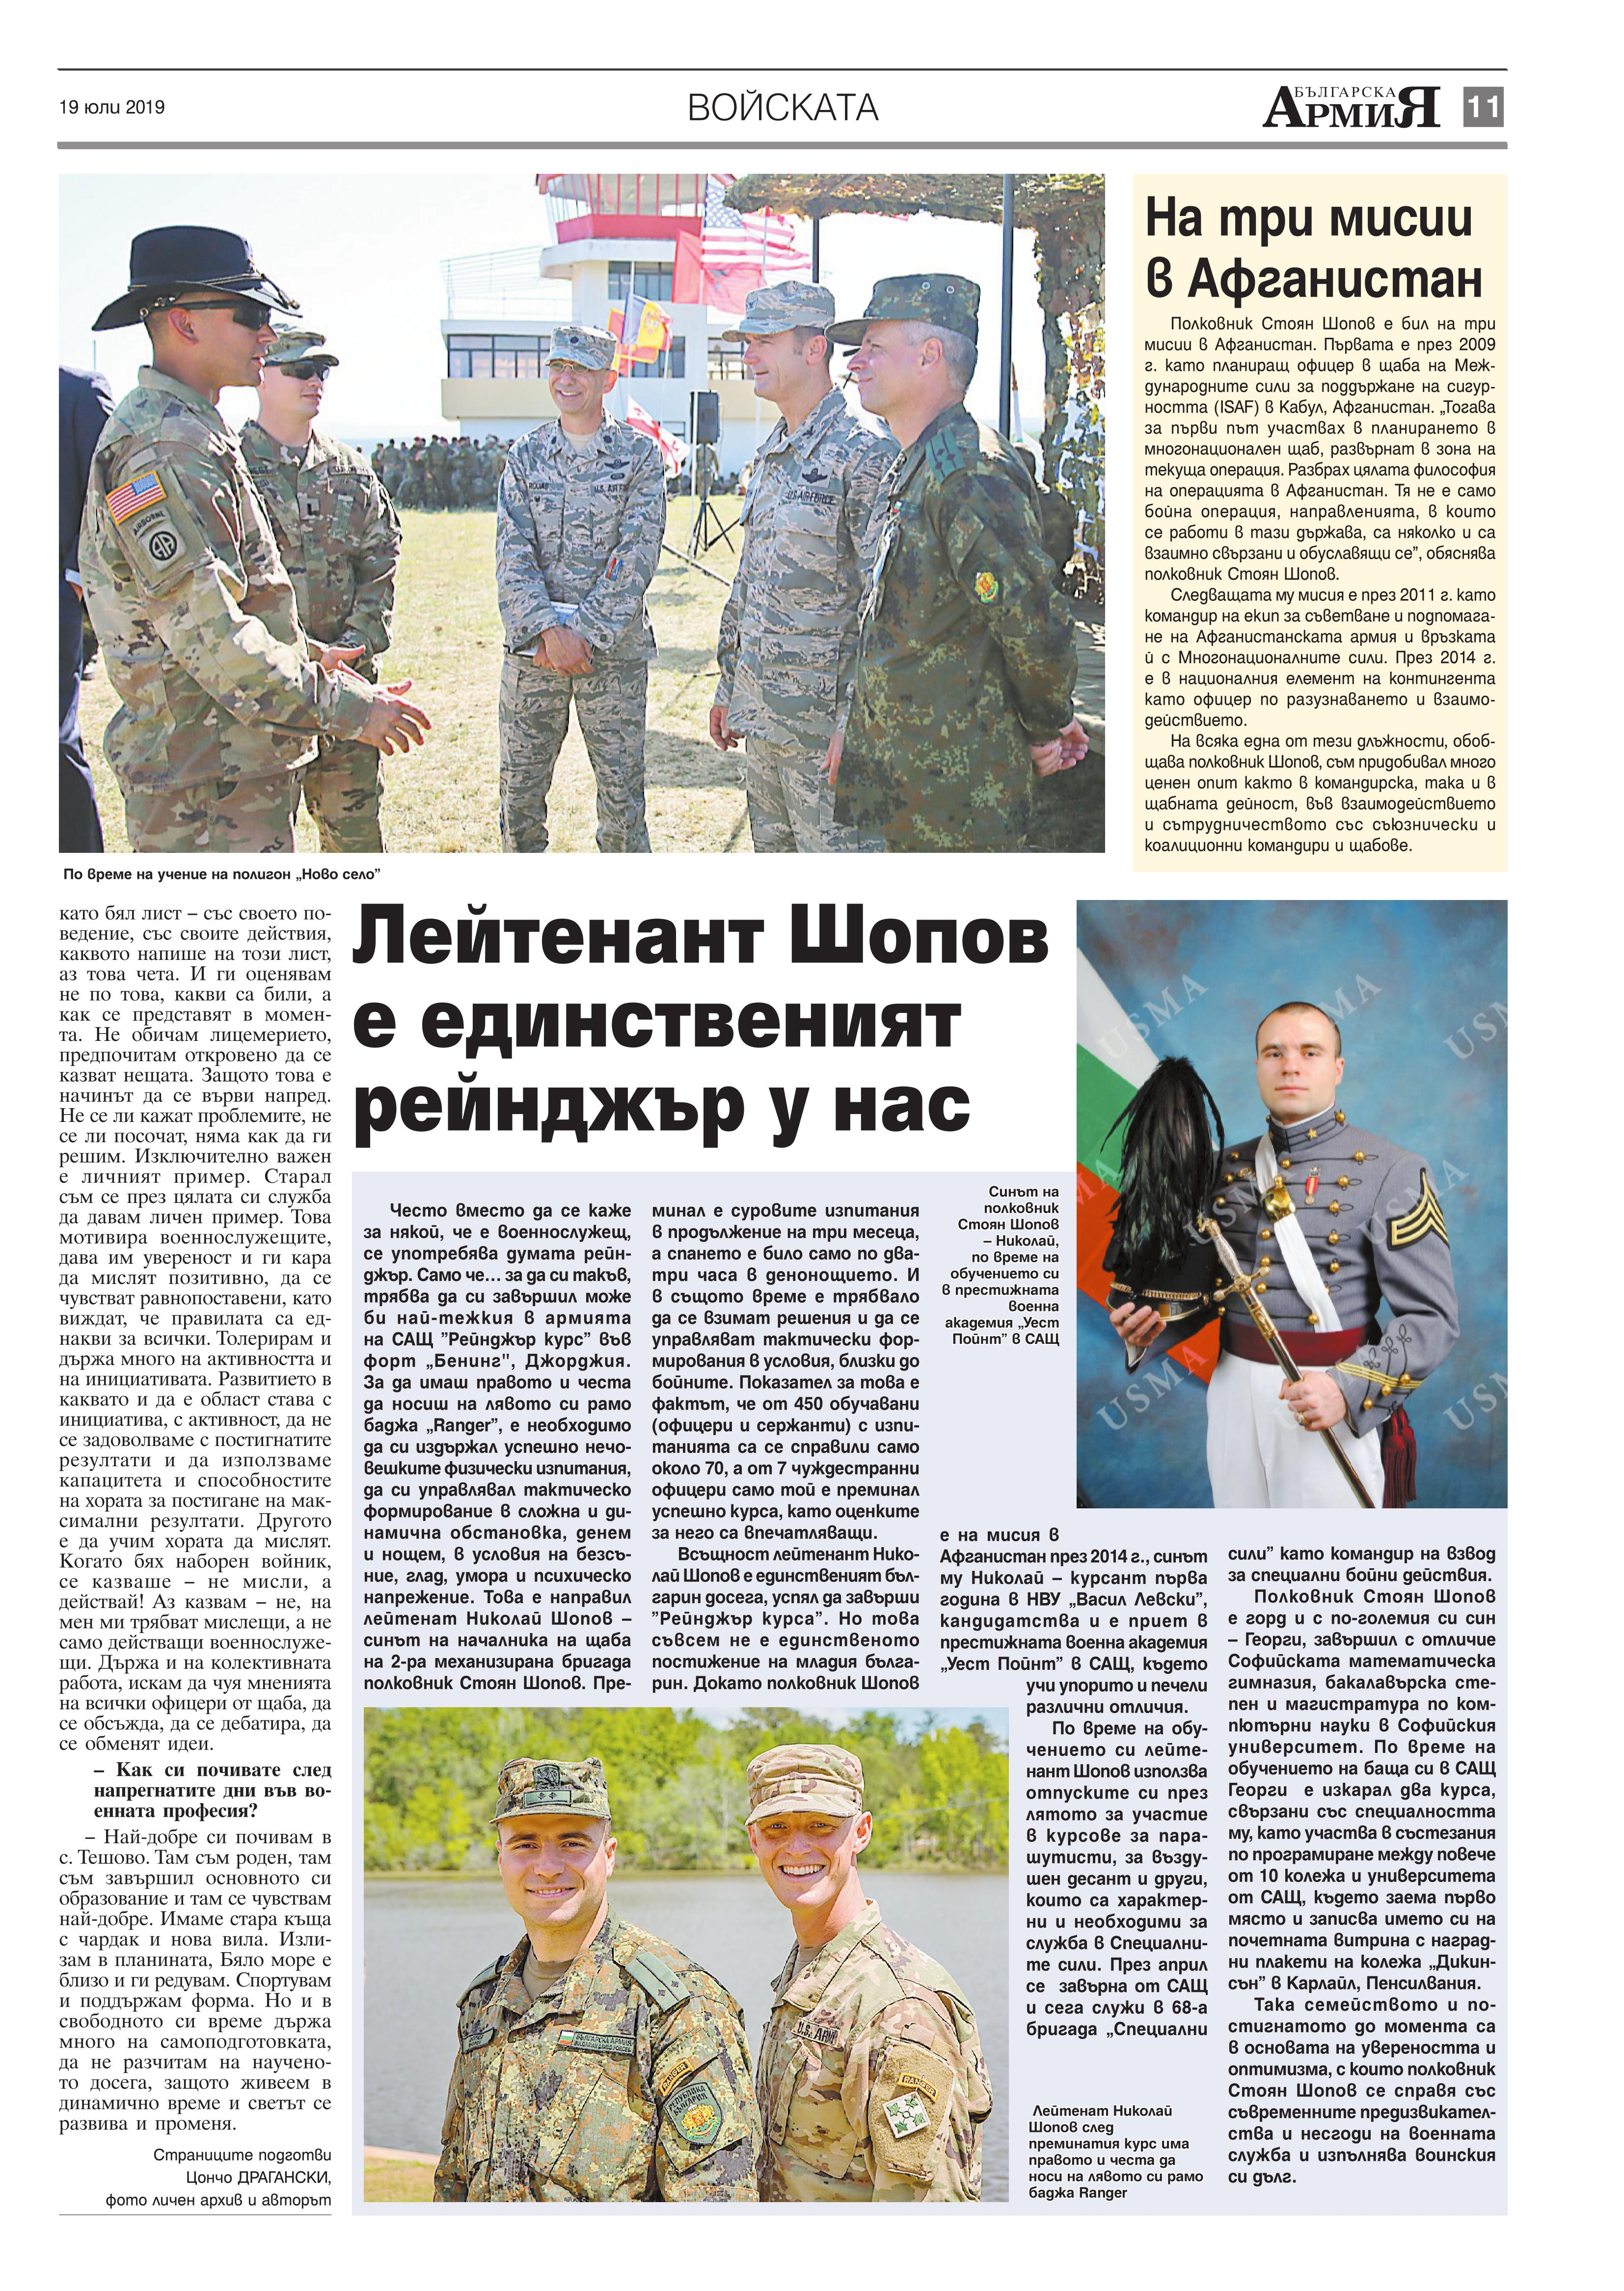 https://armymedia.bg/wp-content/uploads/2015/06/11.page1_-103.jpg